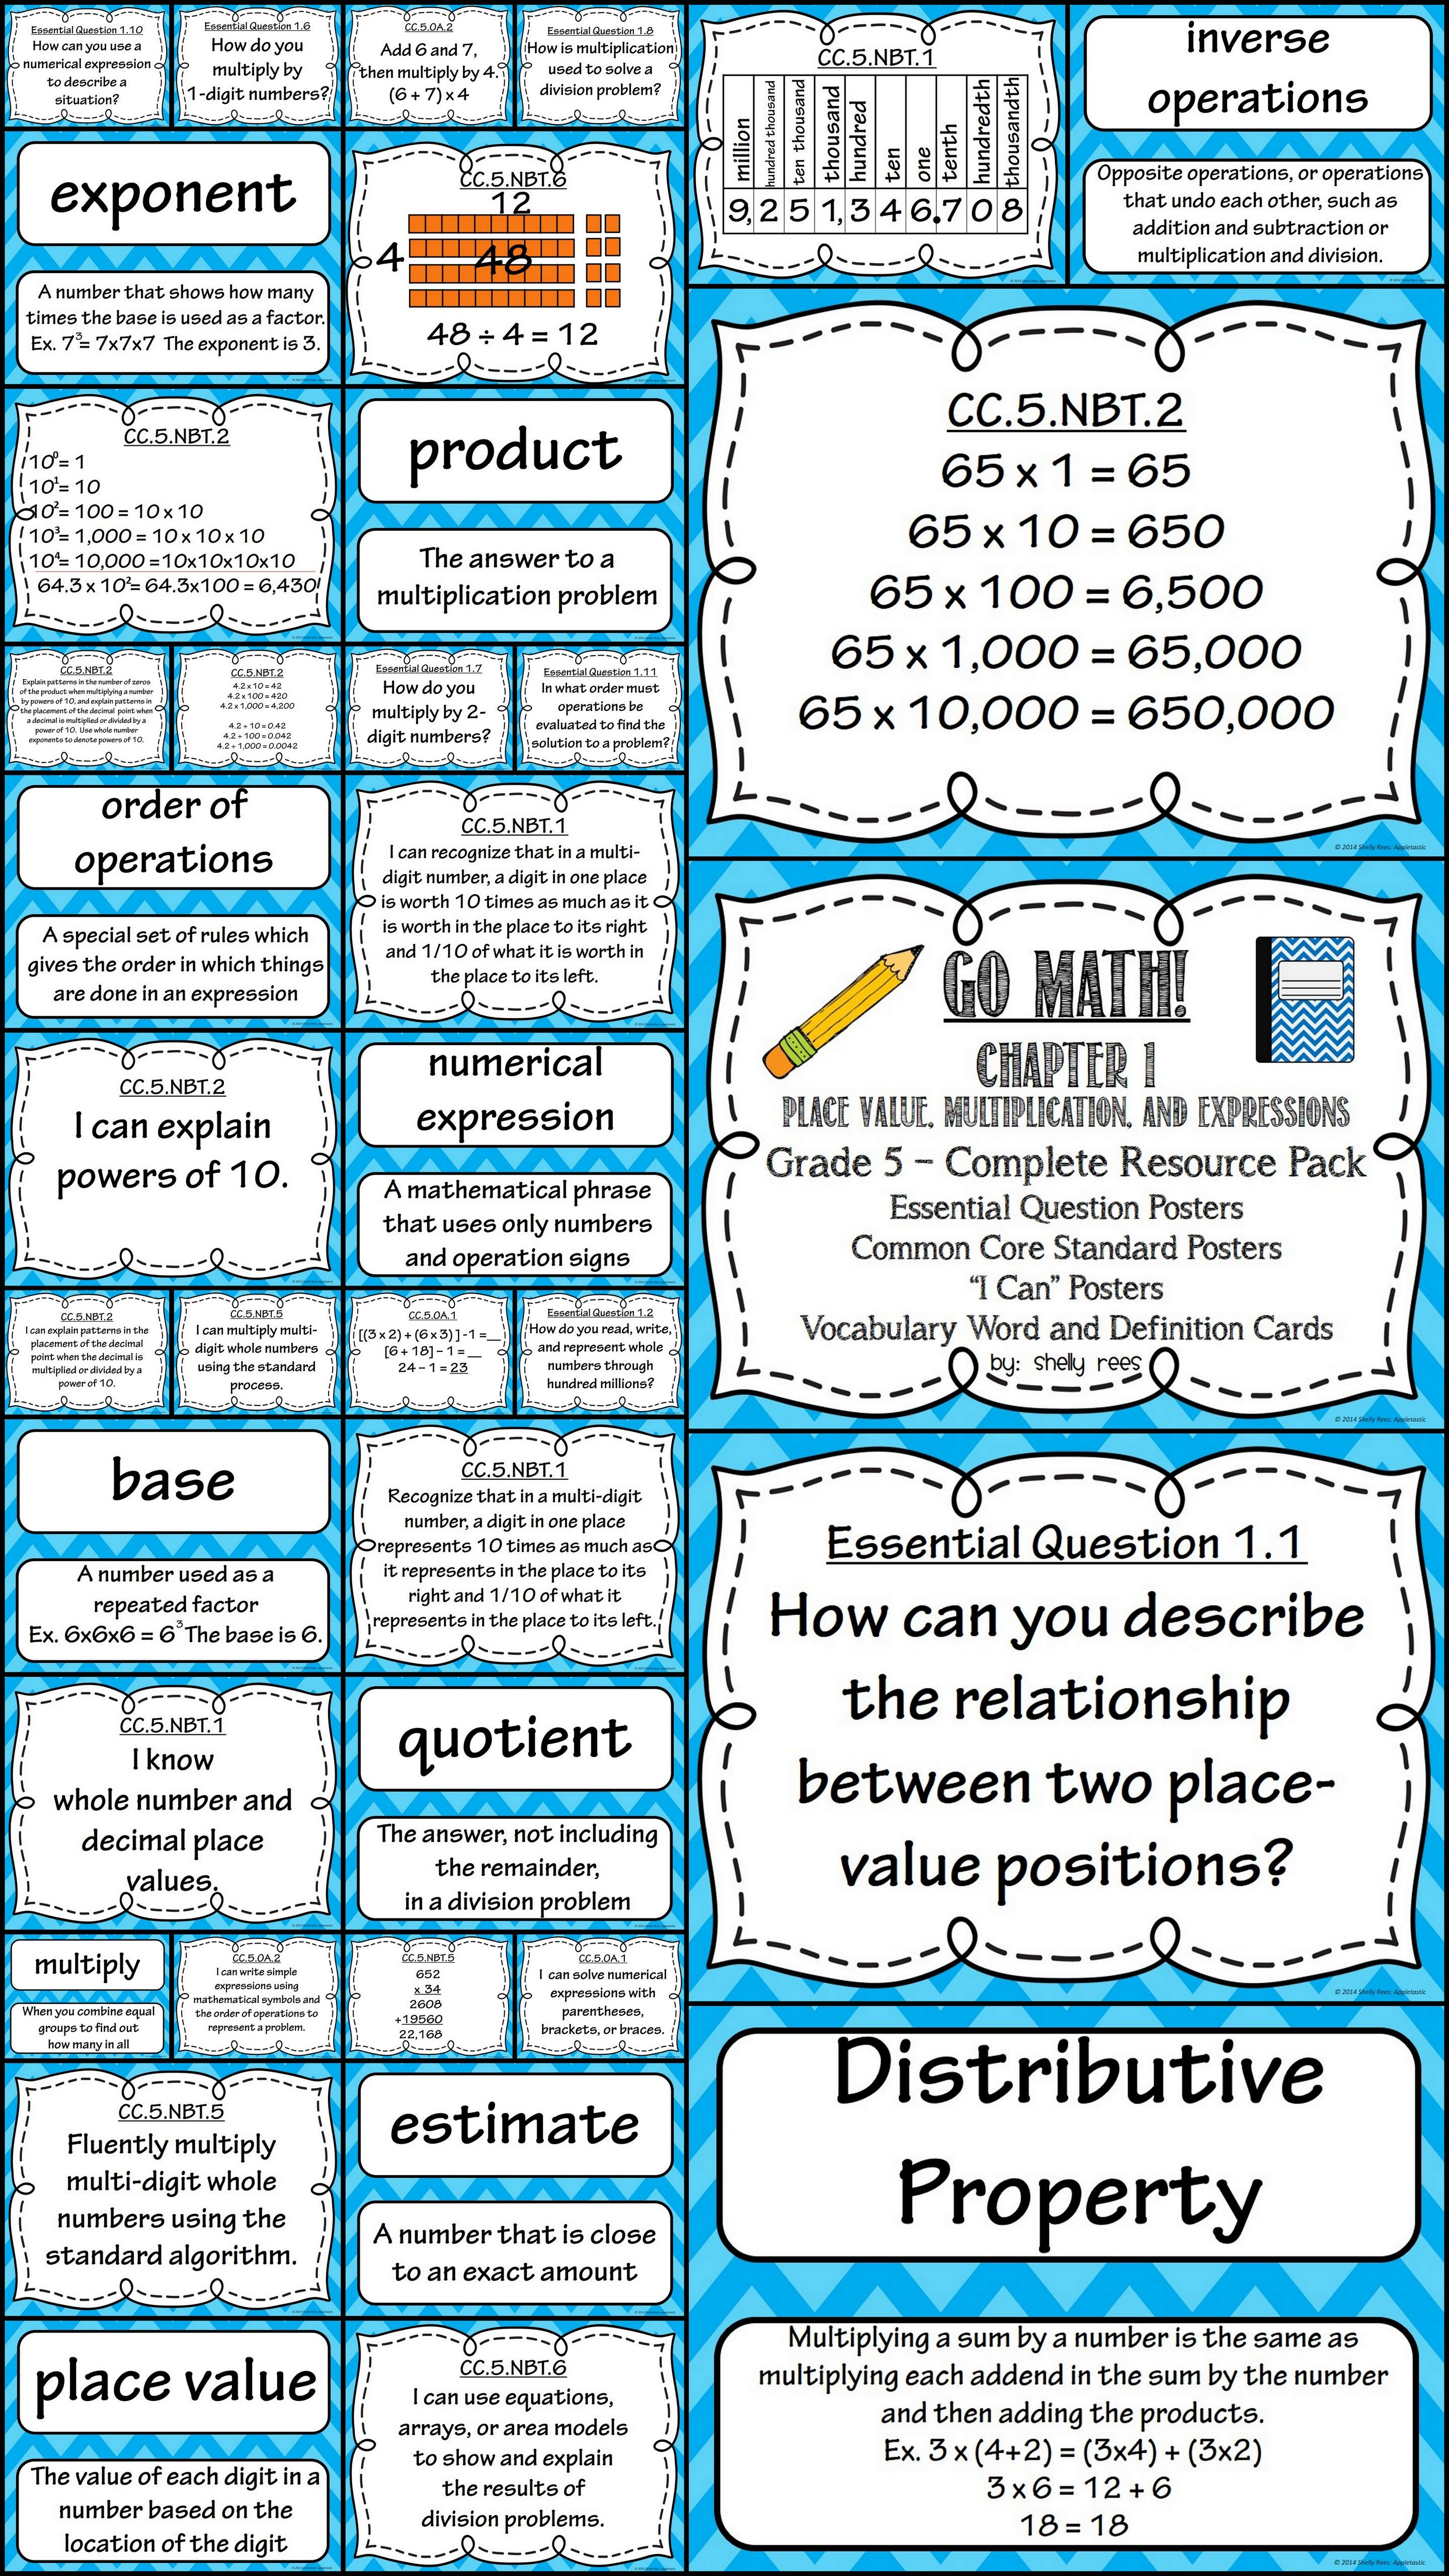 Go Math Chapter 1 5th Grade Resource Packet